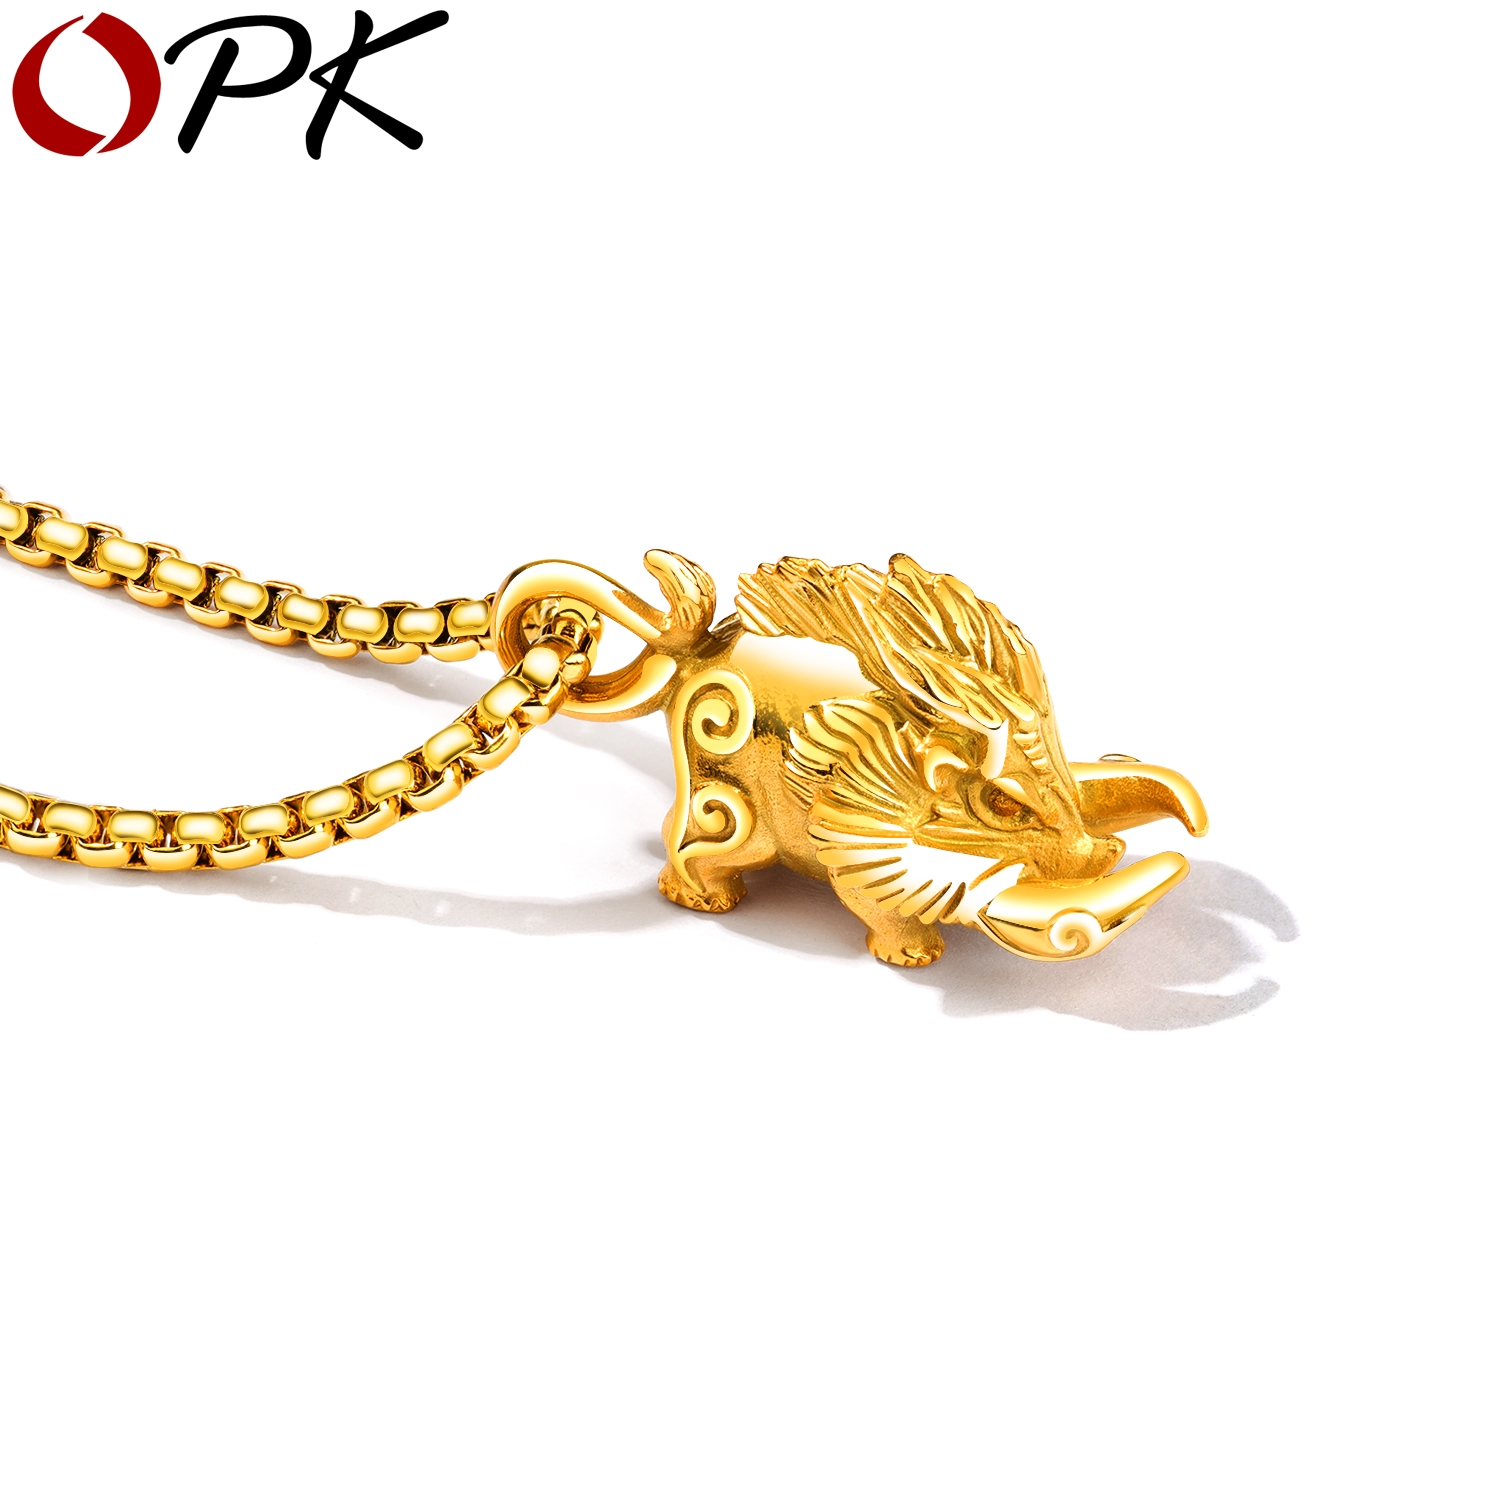 OPK New Fashion Hyperbole Wild Boar Designed Stainless Steel 3 Color 600mm Length Chain Animal Style Punk Jewelry For Men GX1404